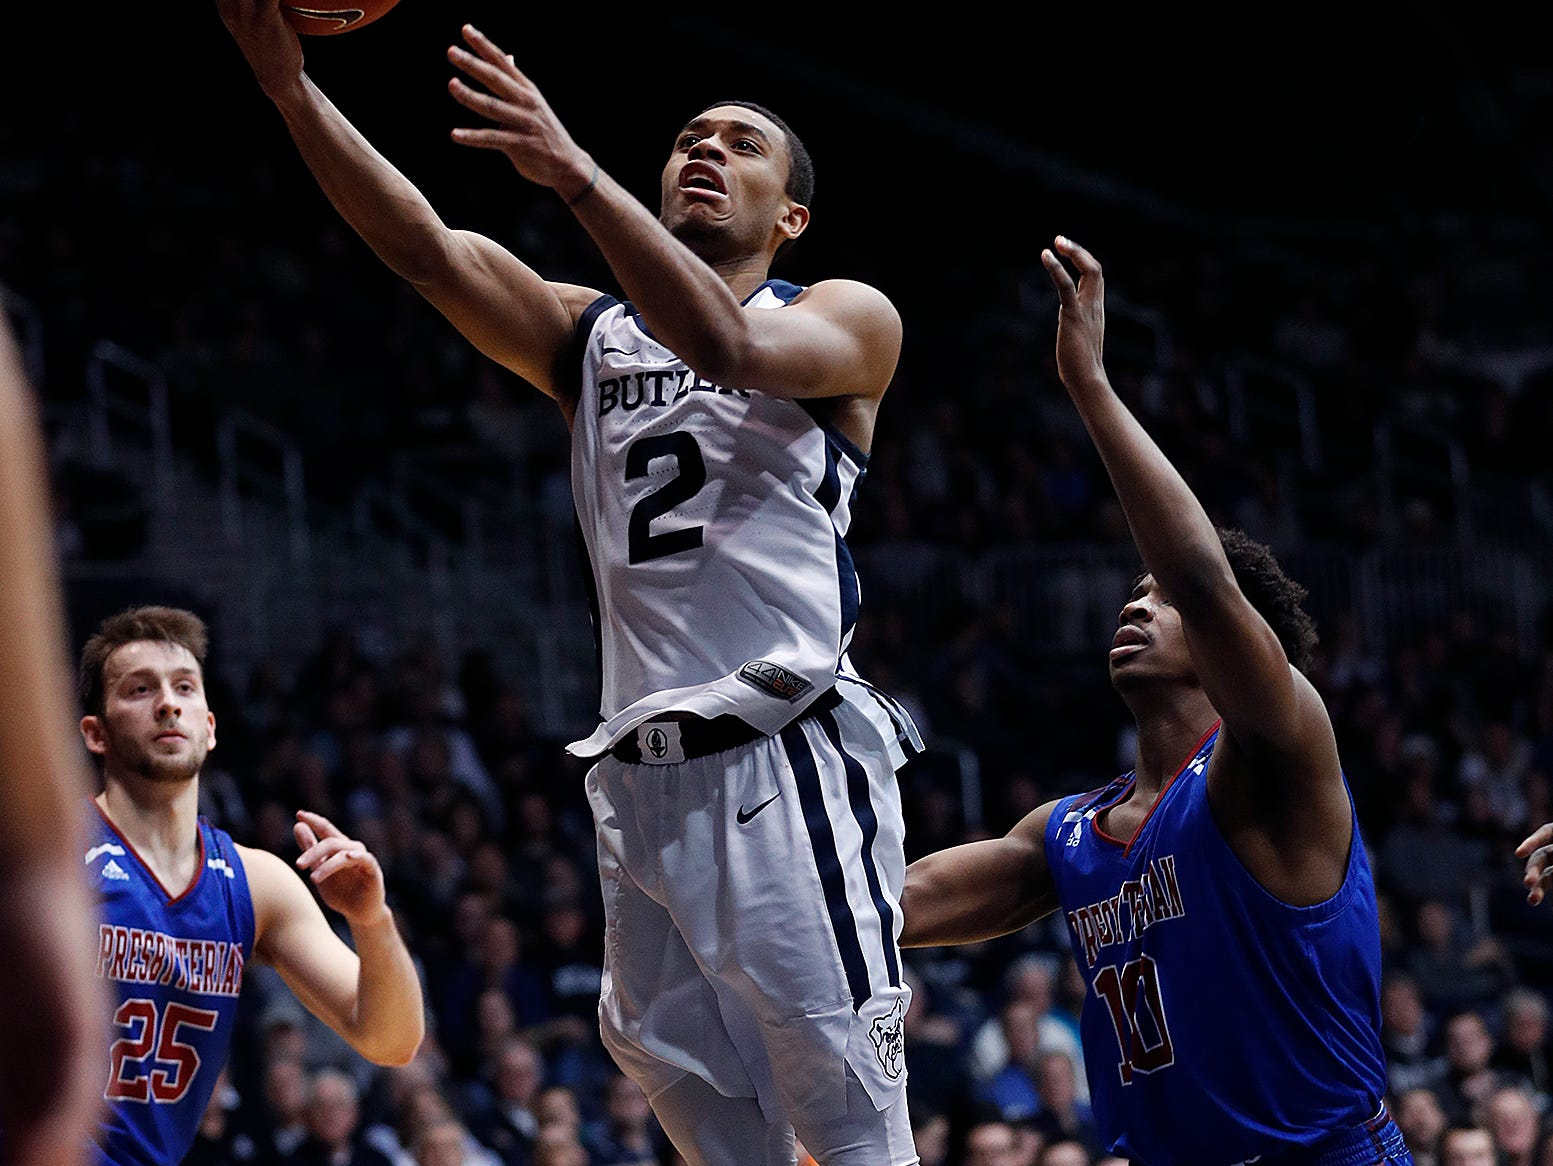 Butler Bulldogs guard Aaron Thompson (2) drives around Presbyterian Blue Hose guard Adam Flagler (10) in the second half of their game at Hinkle Fieldhouse on Monday, Dec. 18, 2018.